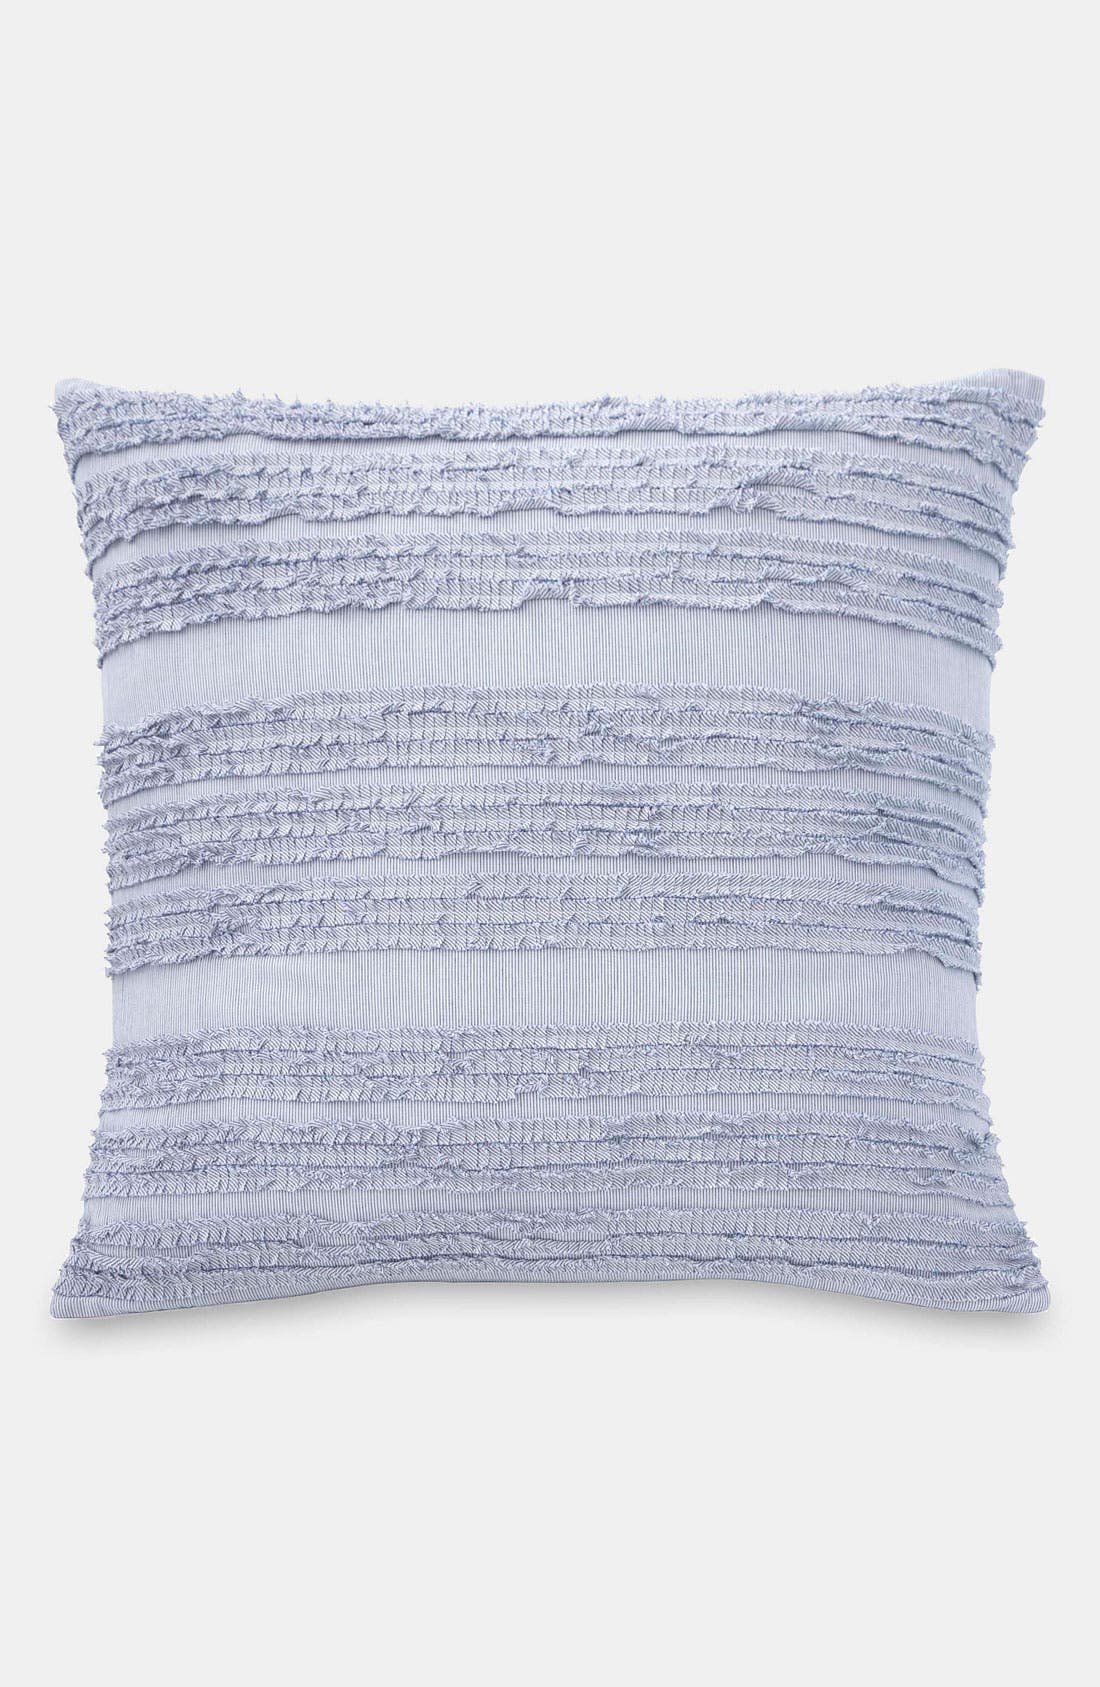 Main Image - DKNY 'Pure Innocence' Euro Pillow Sham